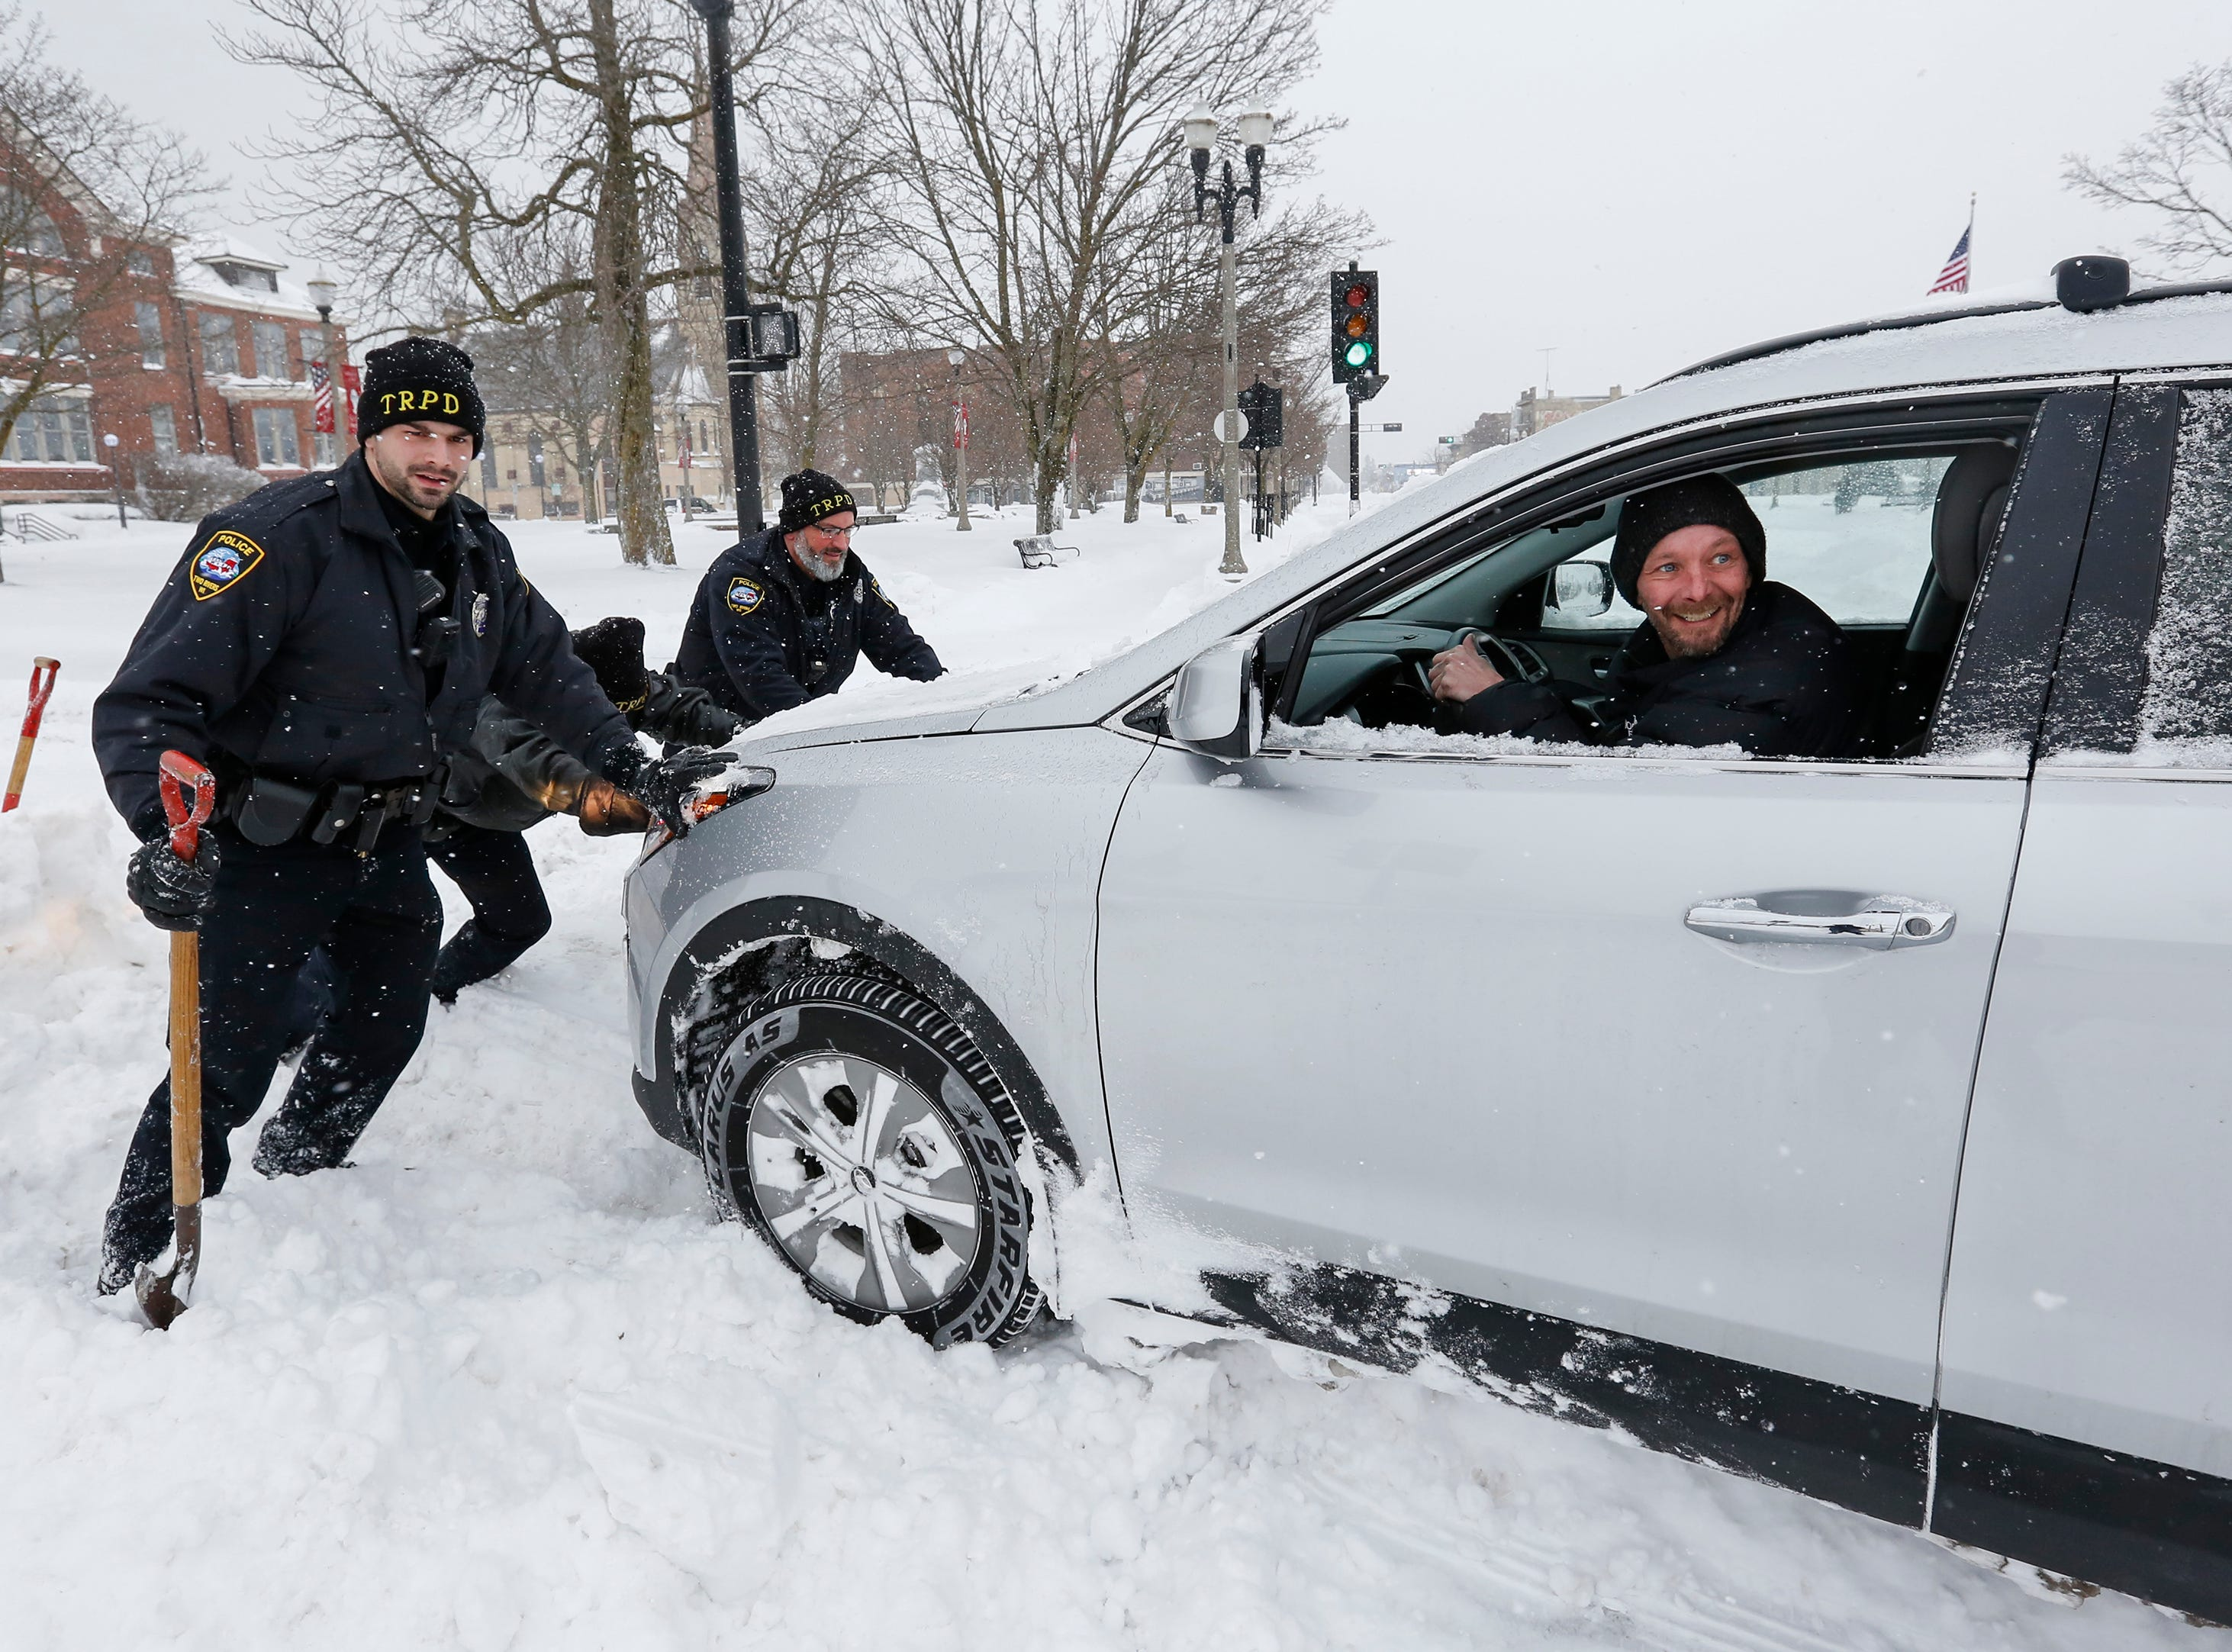 From left, Officers Bobby Strandt, Jeremy Stodola and Tim Culligan, of the Two Rivers Police Department, help push out Kevin Holschbach's car after he got stuck in a snowbank off Main Street on Monday, Jan. 28, 2019, in Two Rivers, Wis.